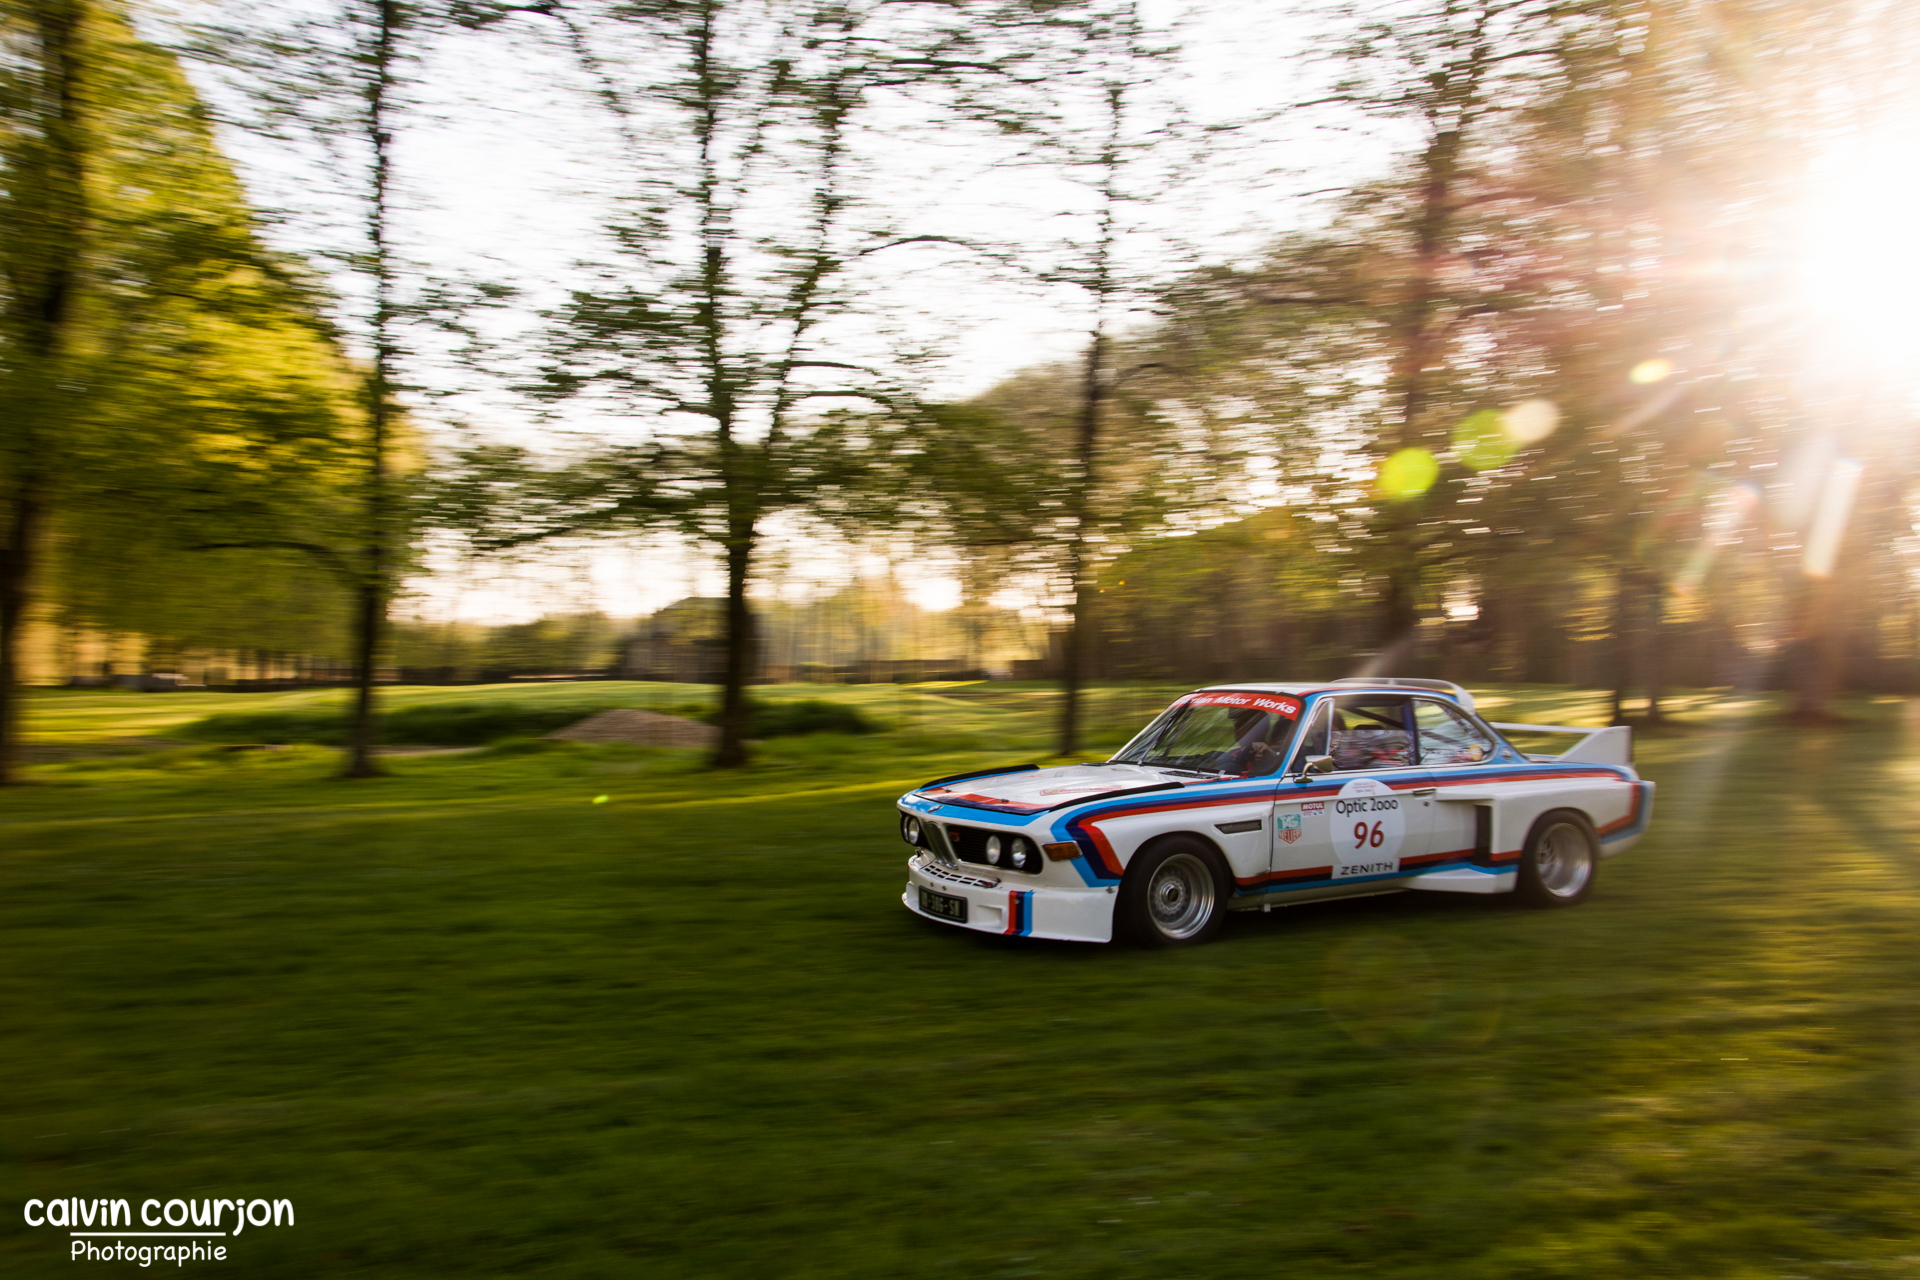 BMW 3.0 CSL - Tour Auto 2015 - Calvin Courjon Photographie